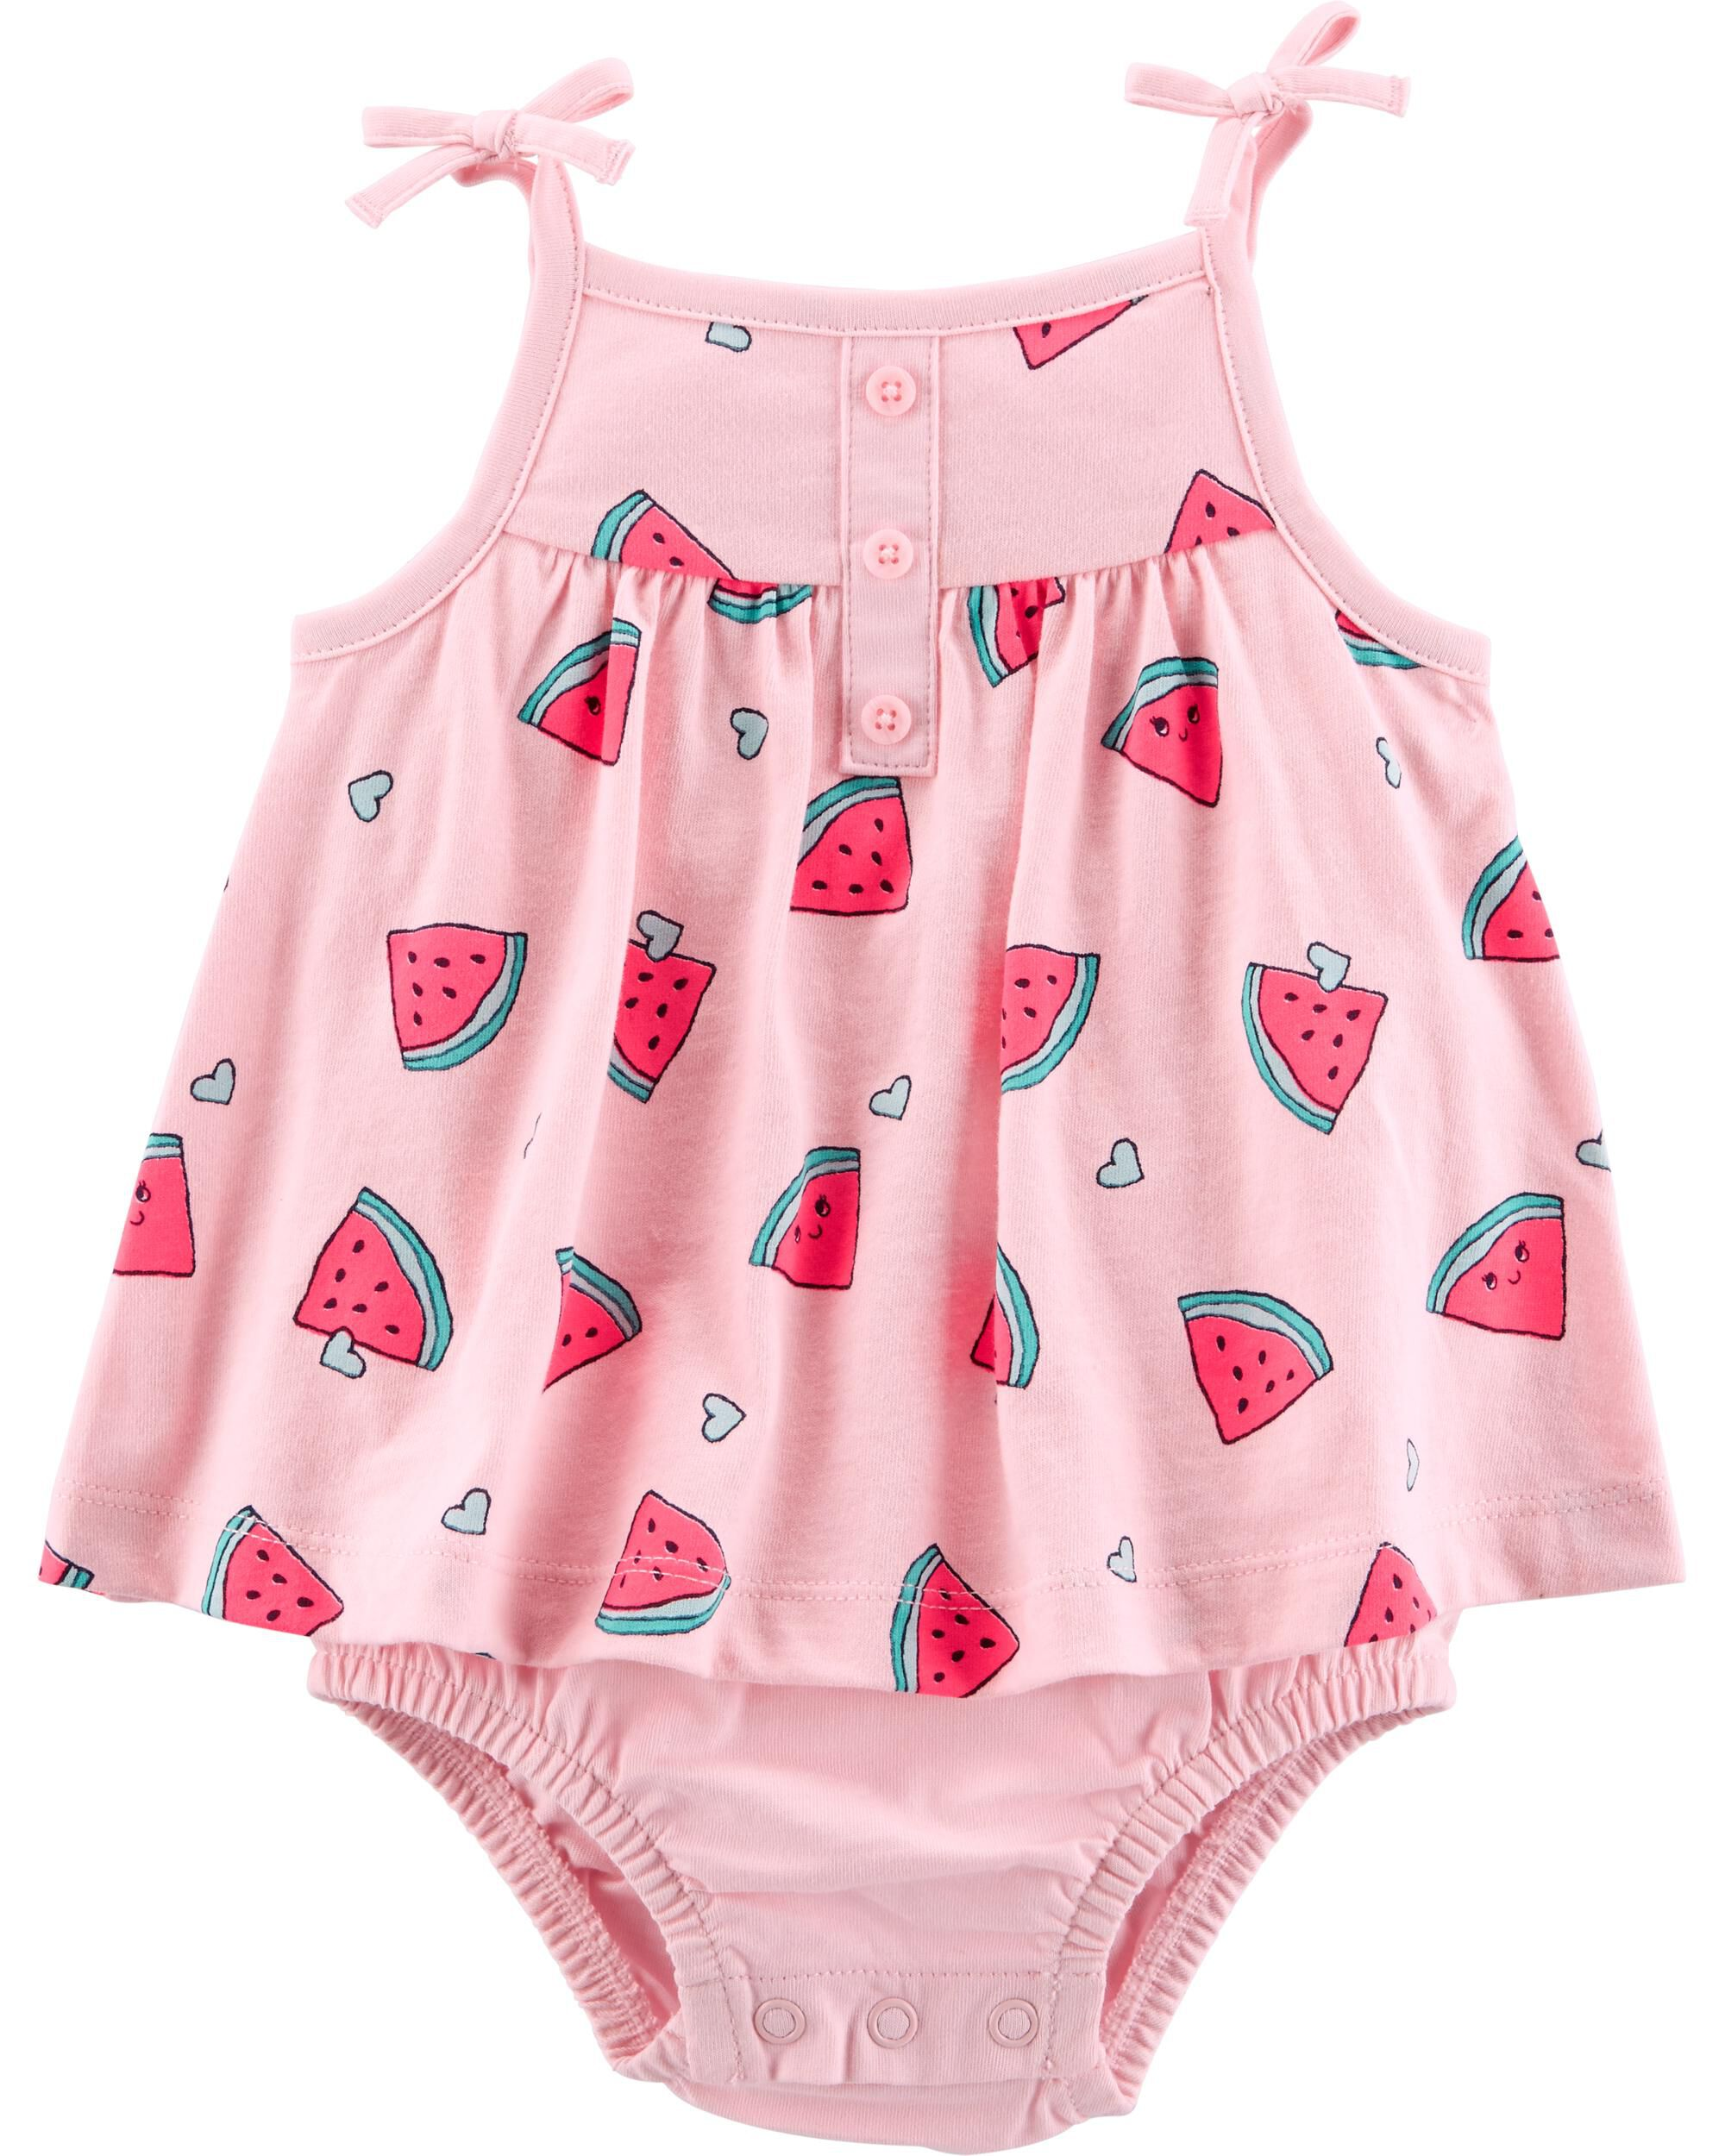 Baby Cheap Price 0-3 Months Baby Girl Tutu And Cardigan Top Watermelons